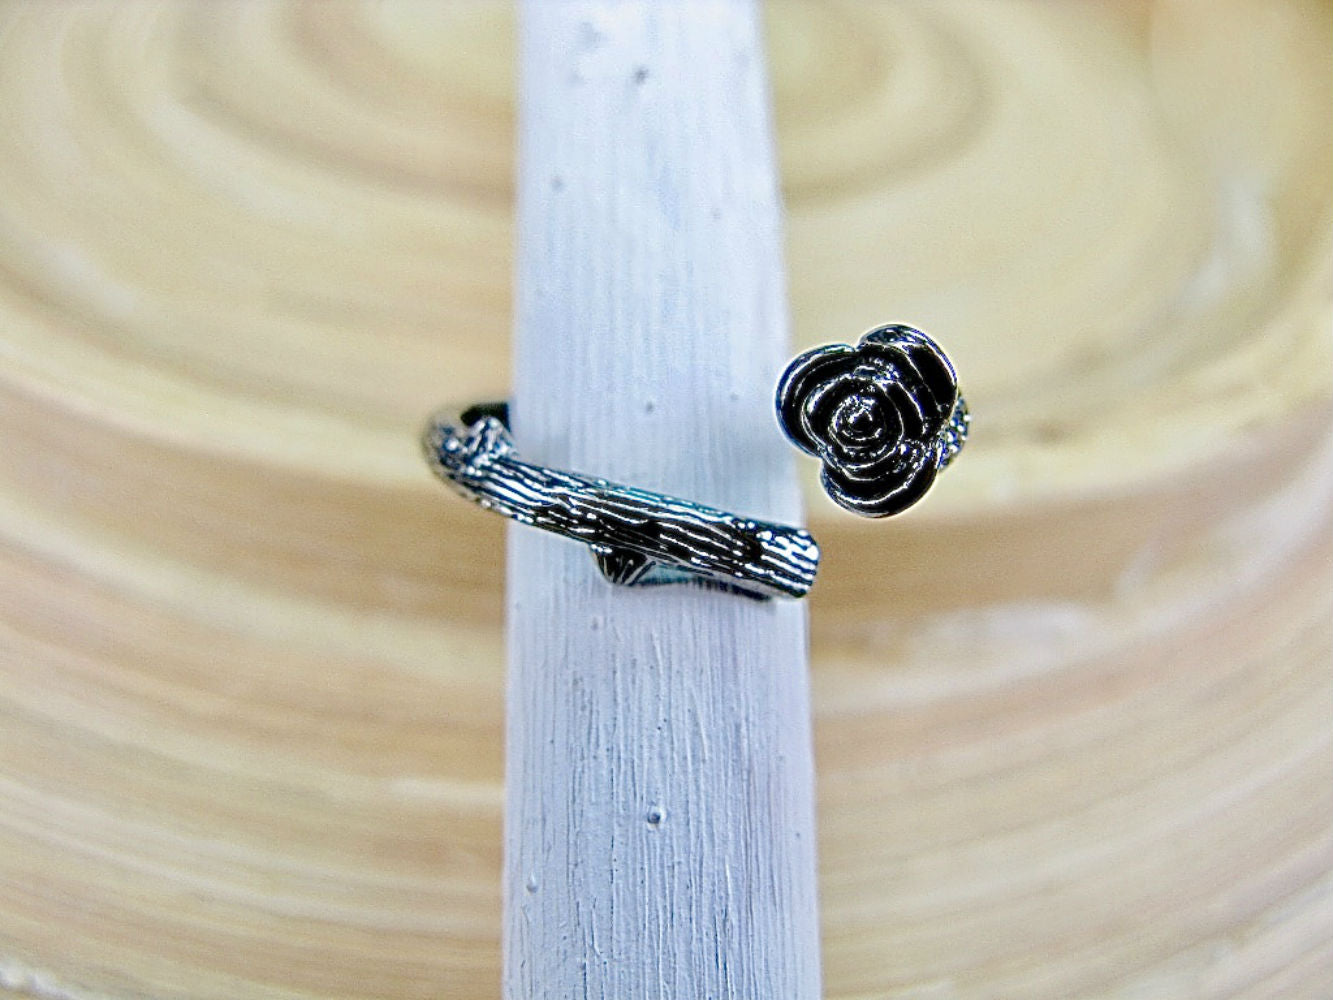 Rose Flower Oxidized 925 Sterling Silver Ring